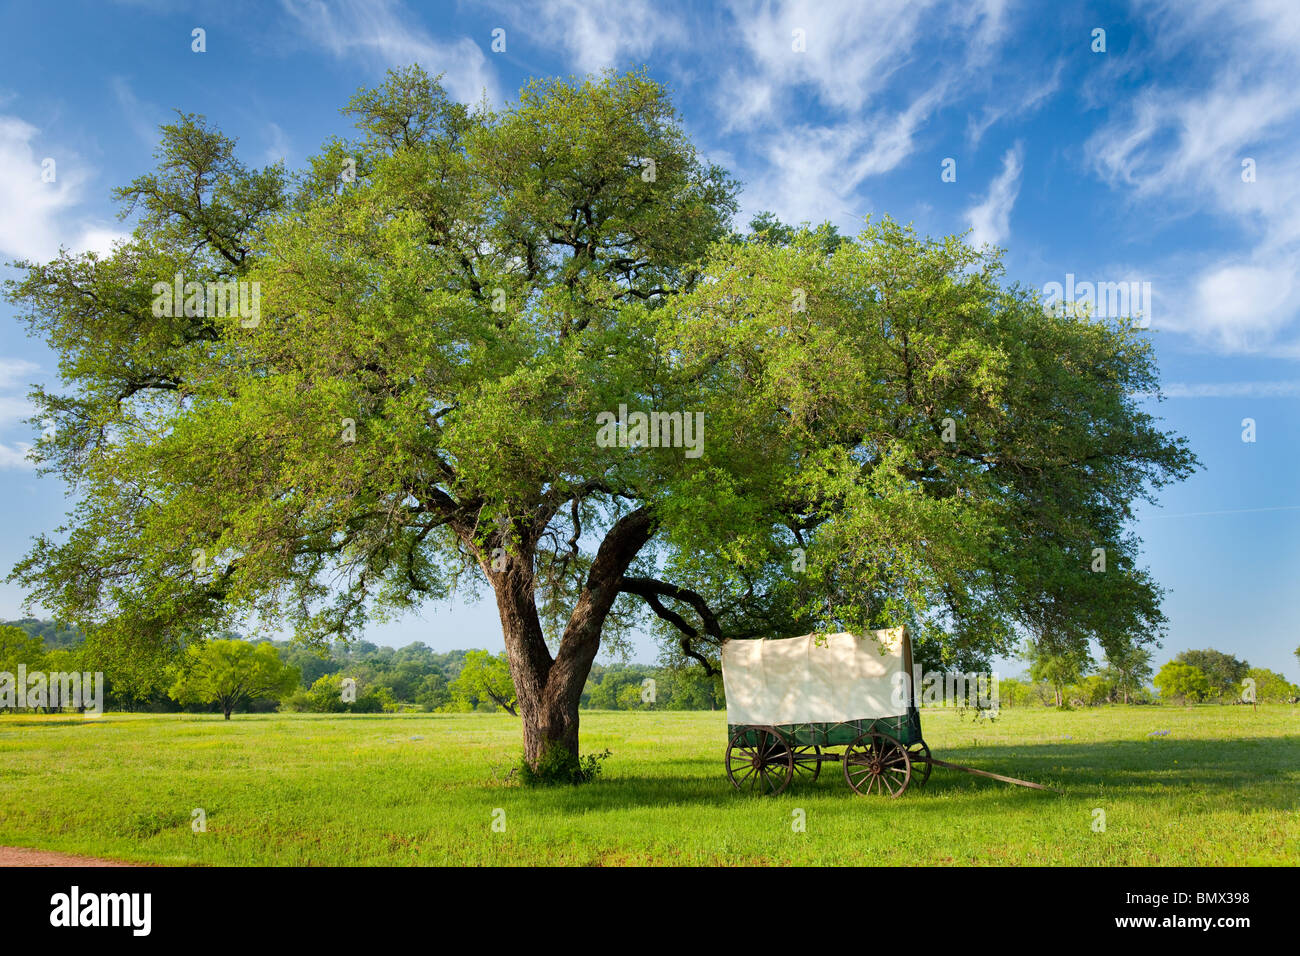 A decorative covered wagon at a ranch in rural Texas hill country, USA. - Stock Image